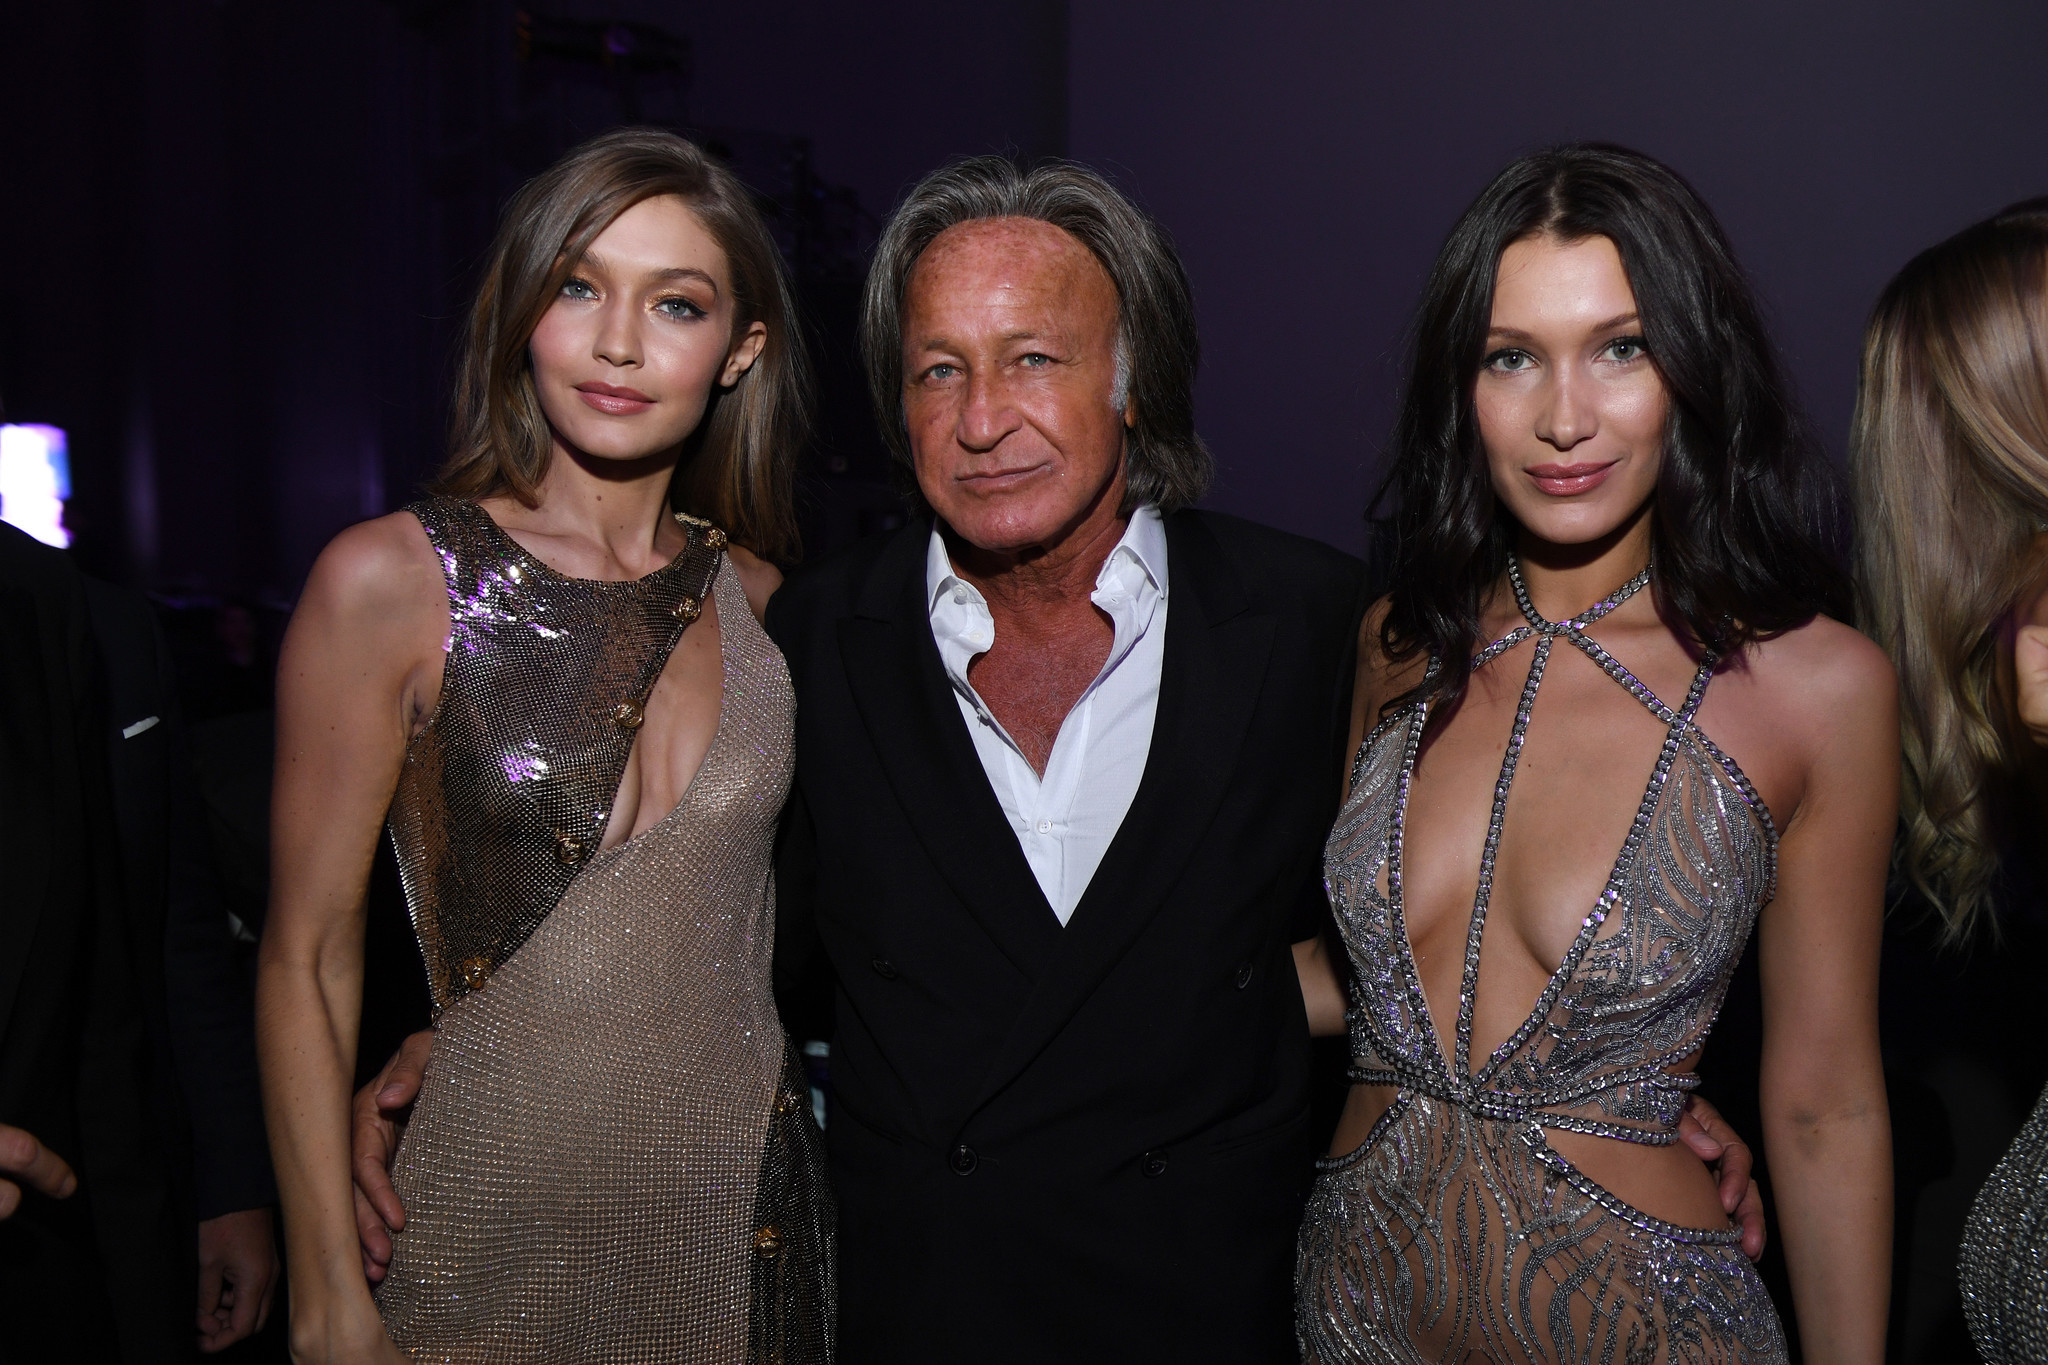 Gigi and Bella Hadid's dad files bankruptcy petition over Bel-Air mega mansion dubbed 'most illegal structure' in Los Angeles